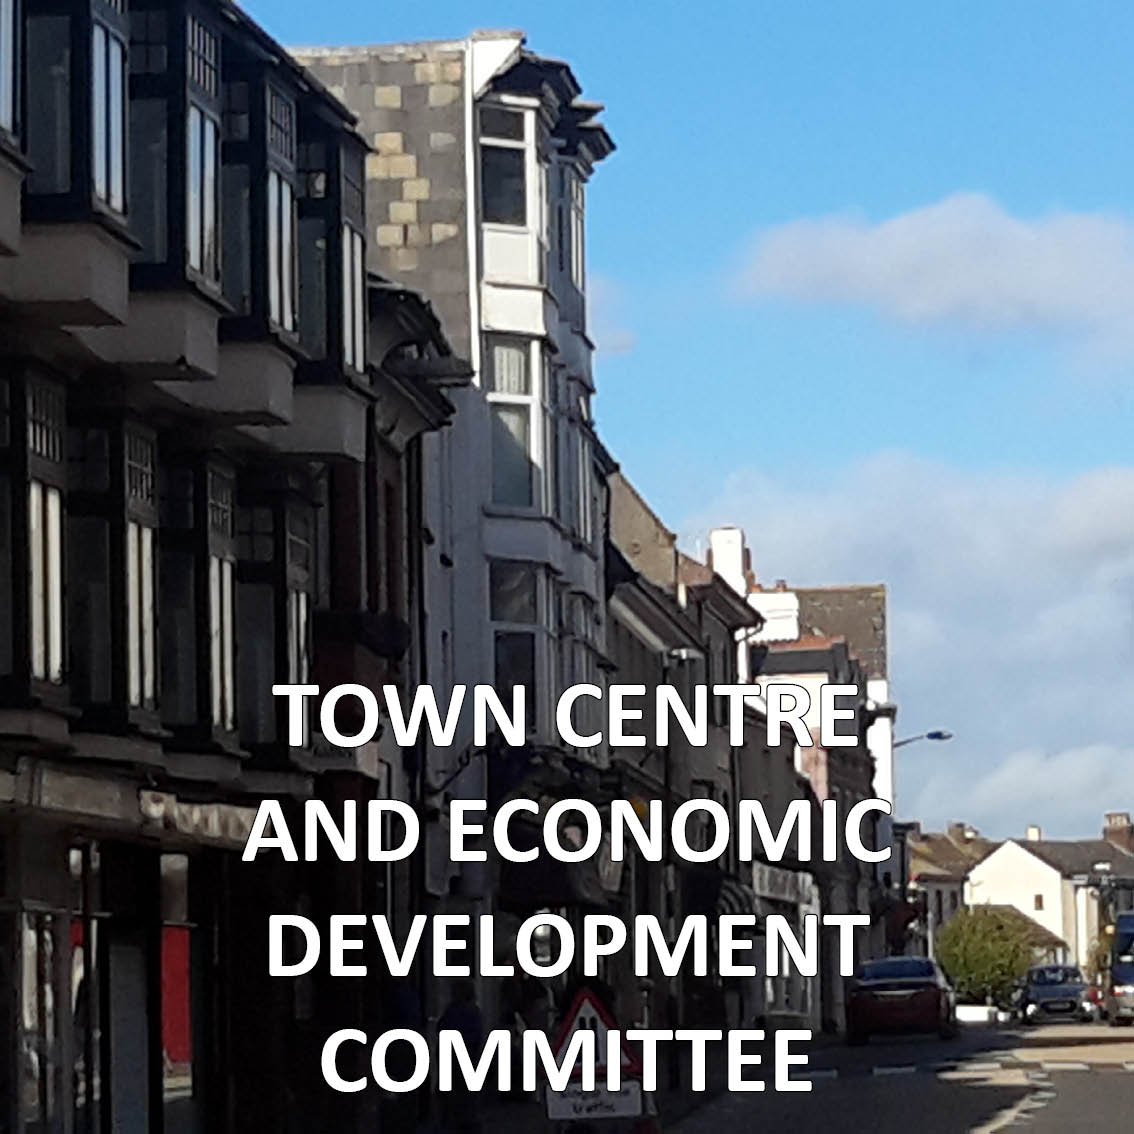 Hyperlink to the Town Centre and Economic Development Committee meetings